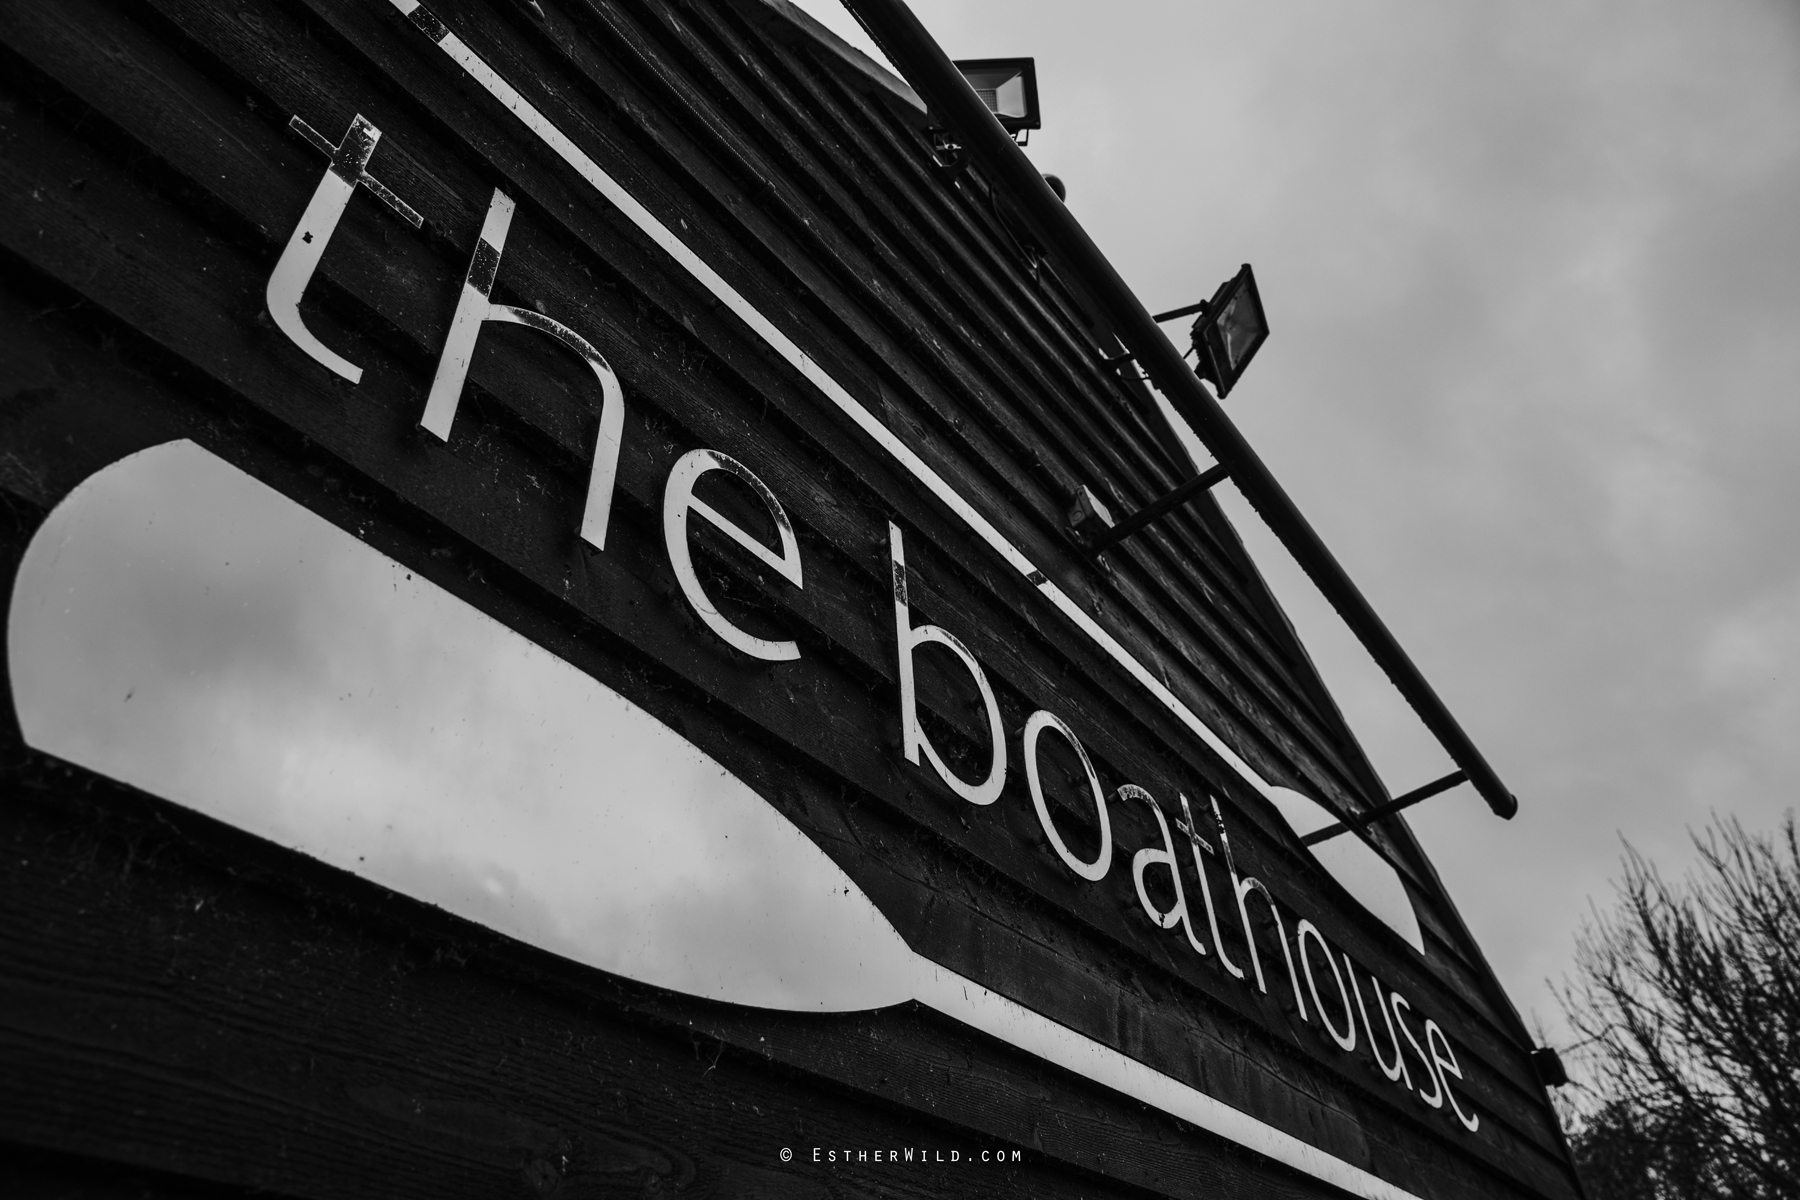 The_BoatHouse_Wedding_Venue_Ormesby_Norfolk_Broads_Boat_Wedding_Photography_Esther_Wild_Photographer_IMG_0822-2.jpg